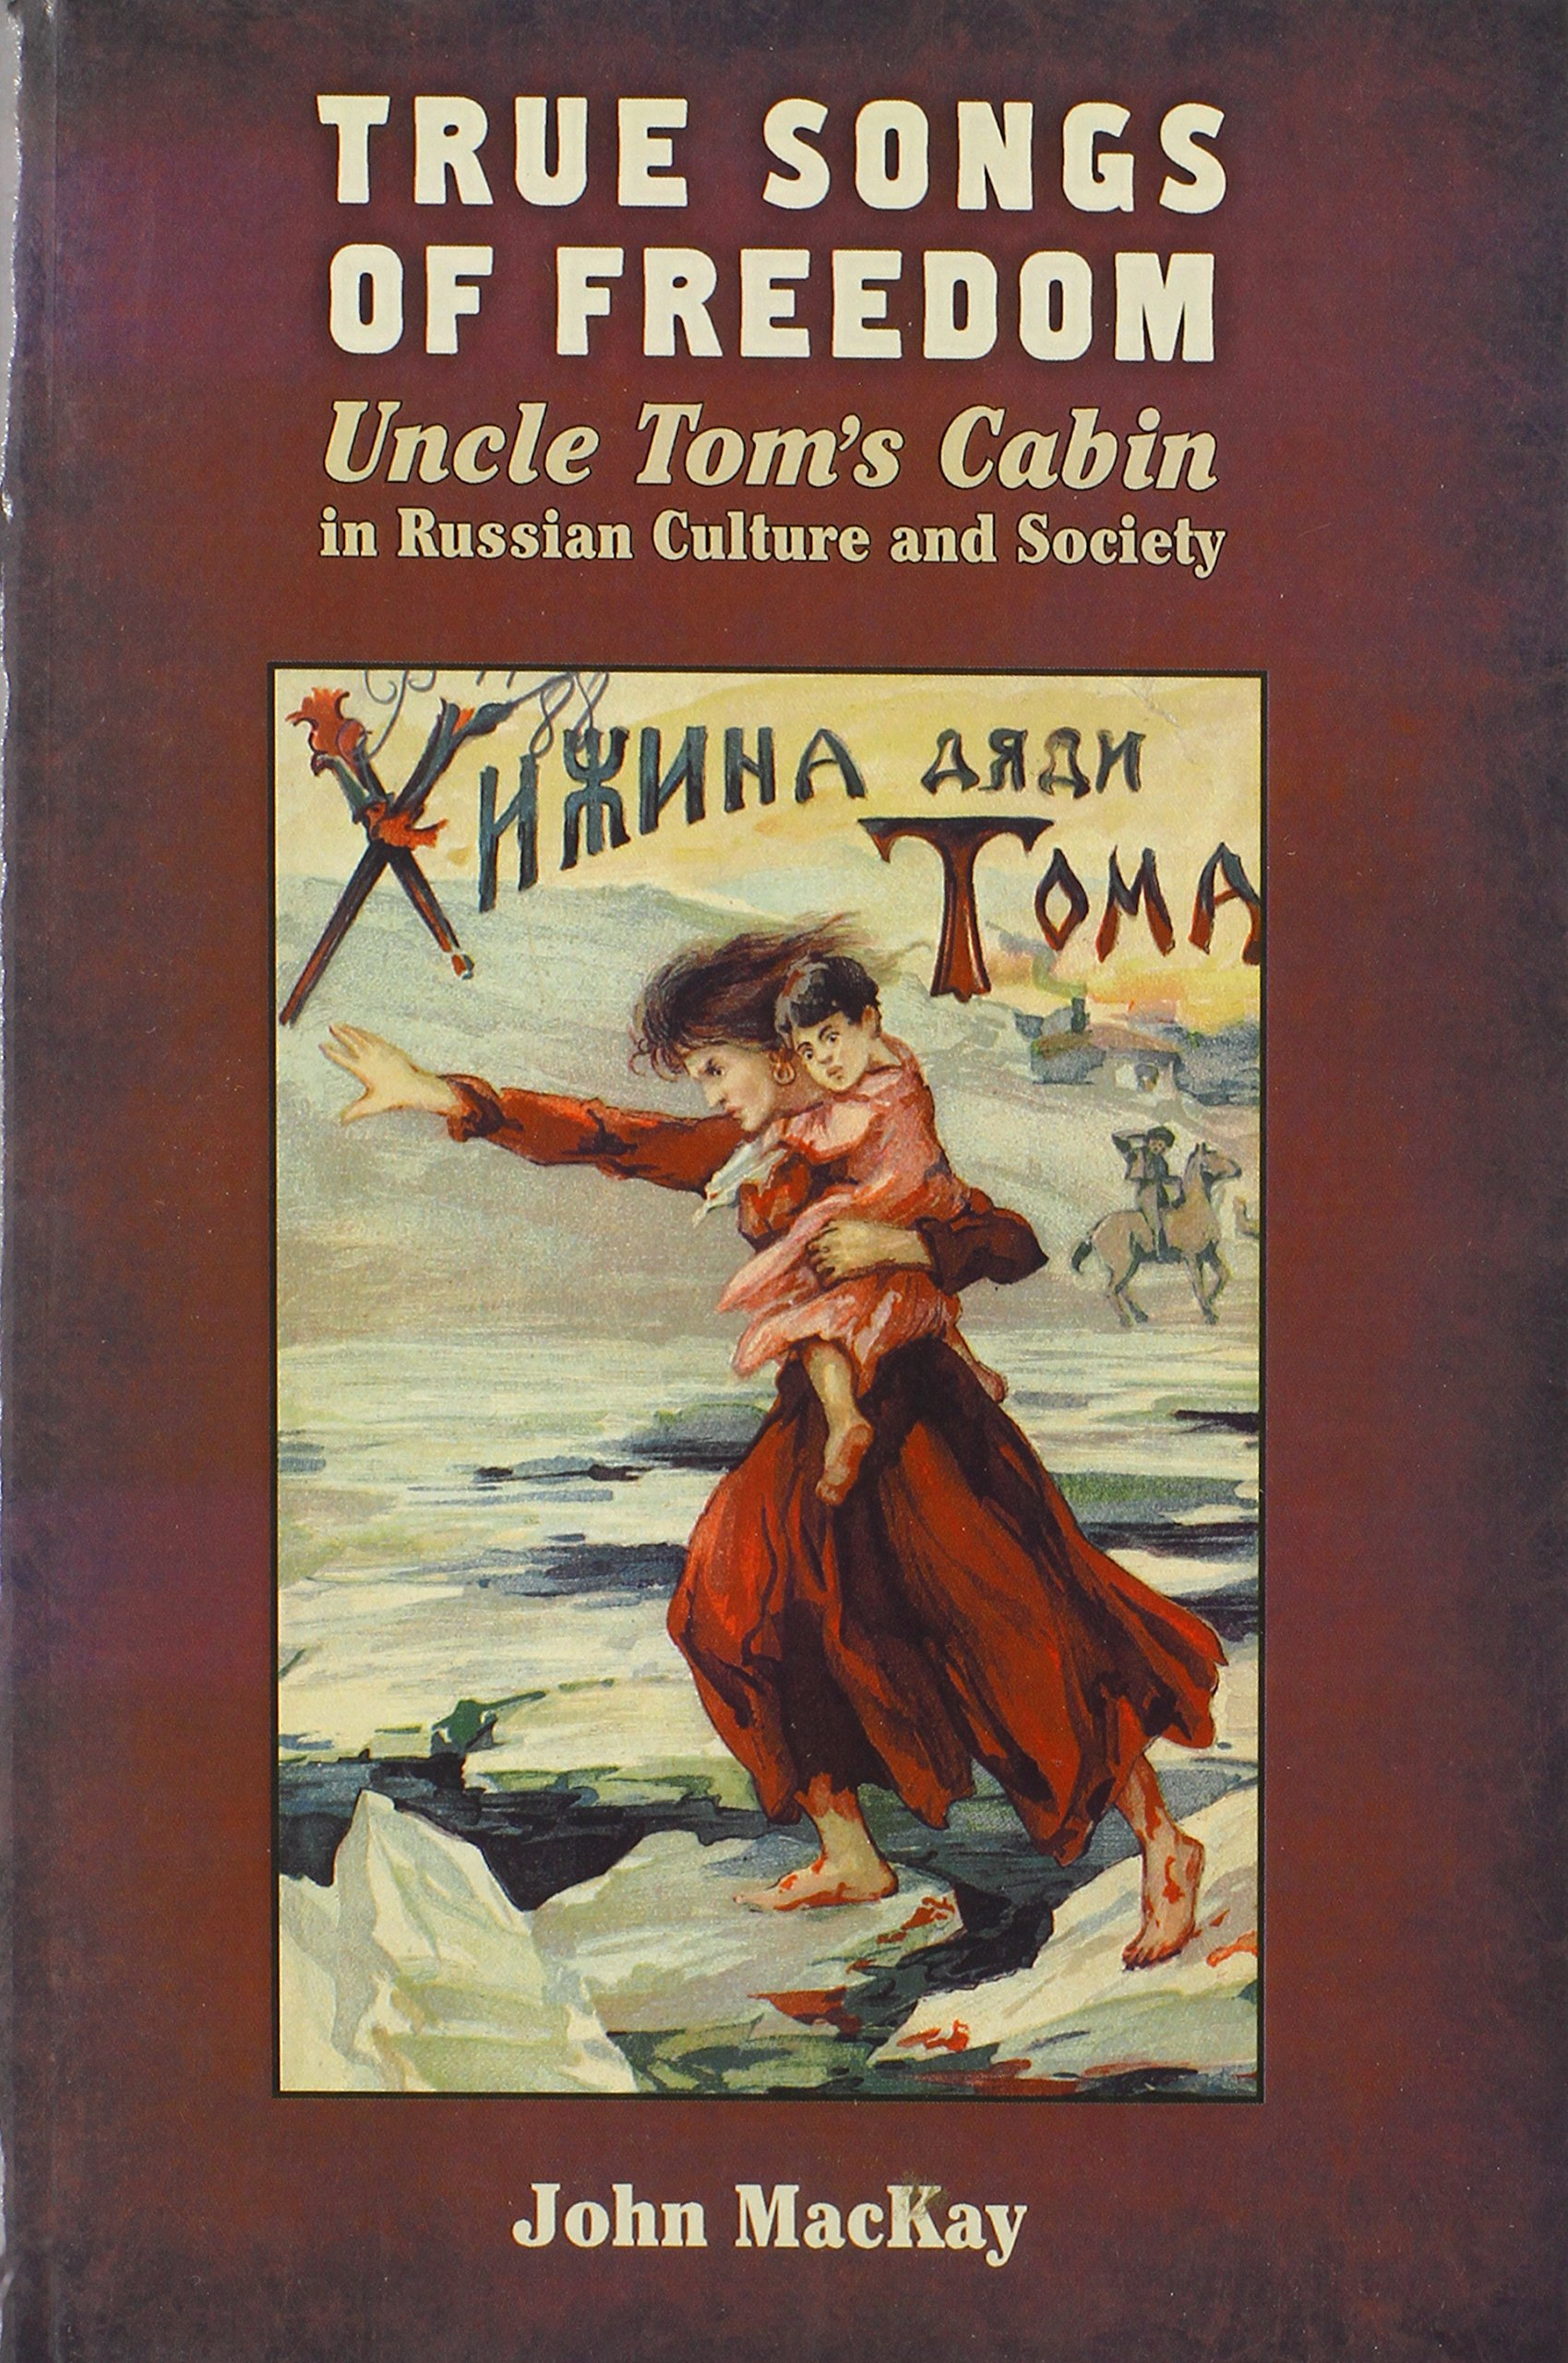 Image result for True Songs of Freedom Uncle Tom's Cabin in Russian Culture and Society